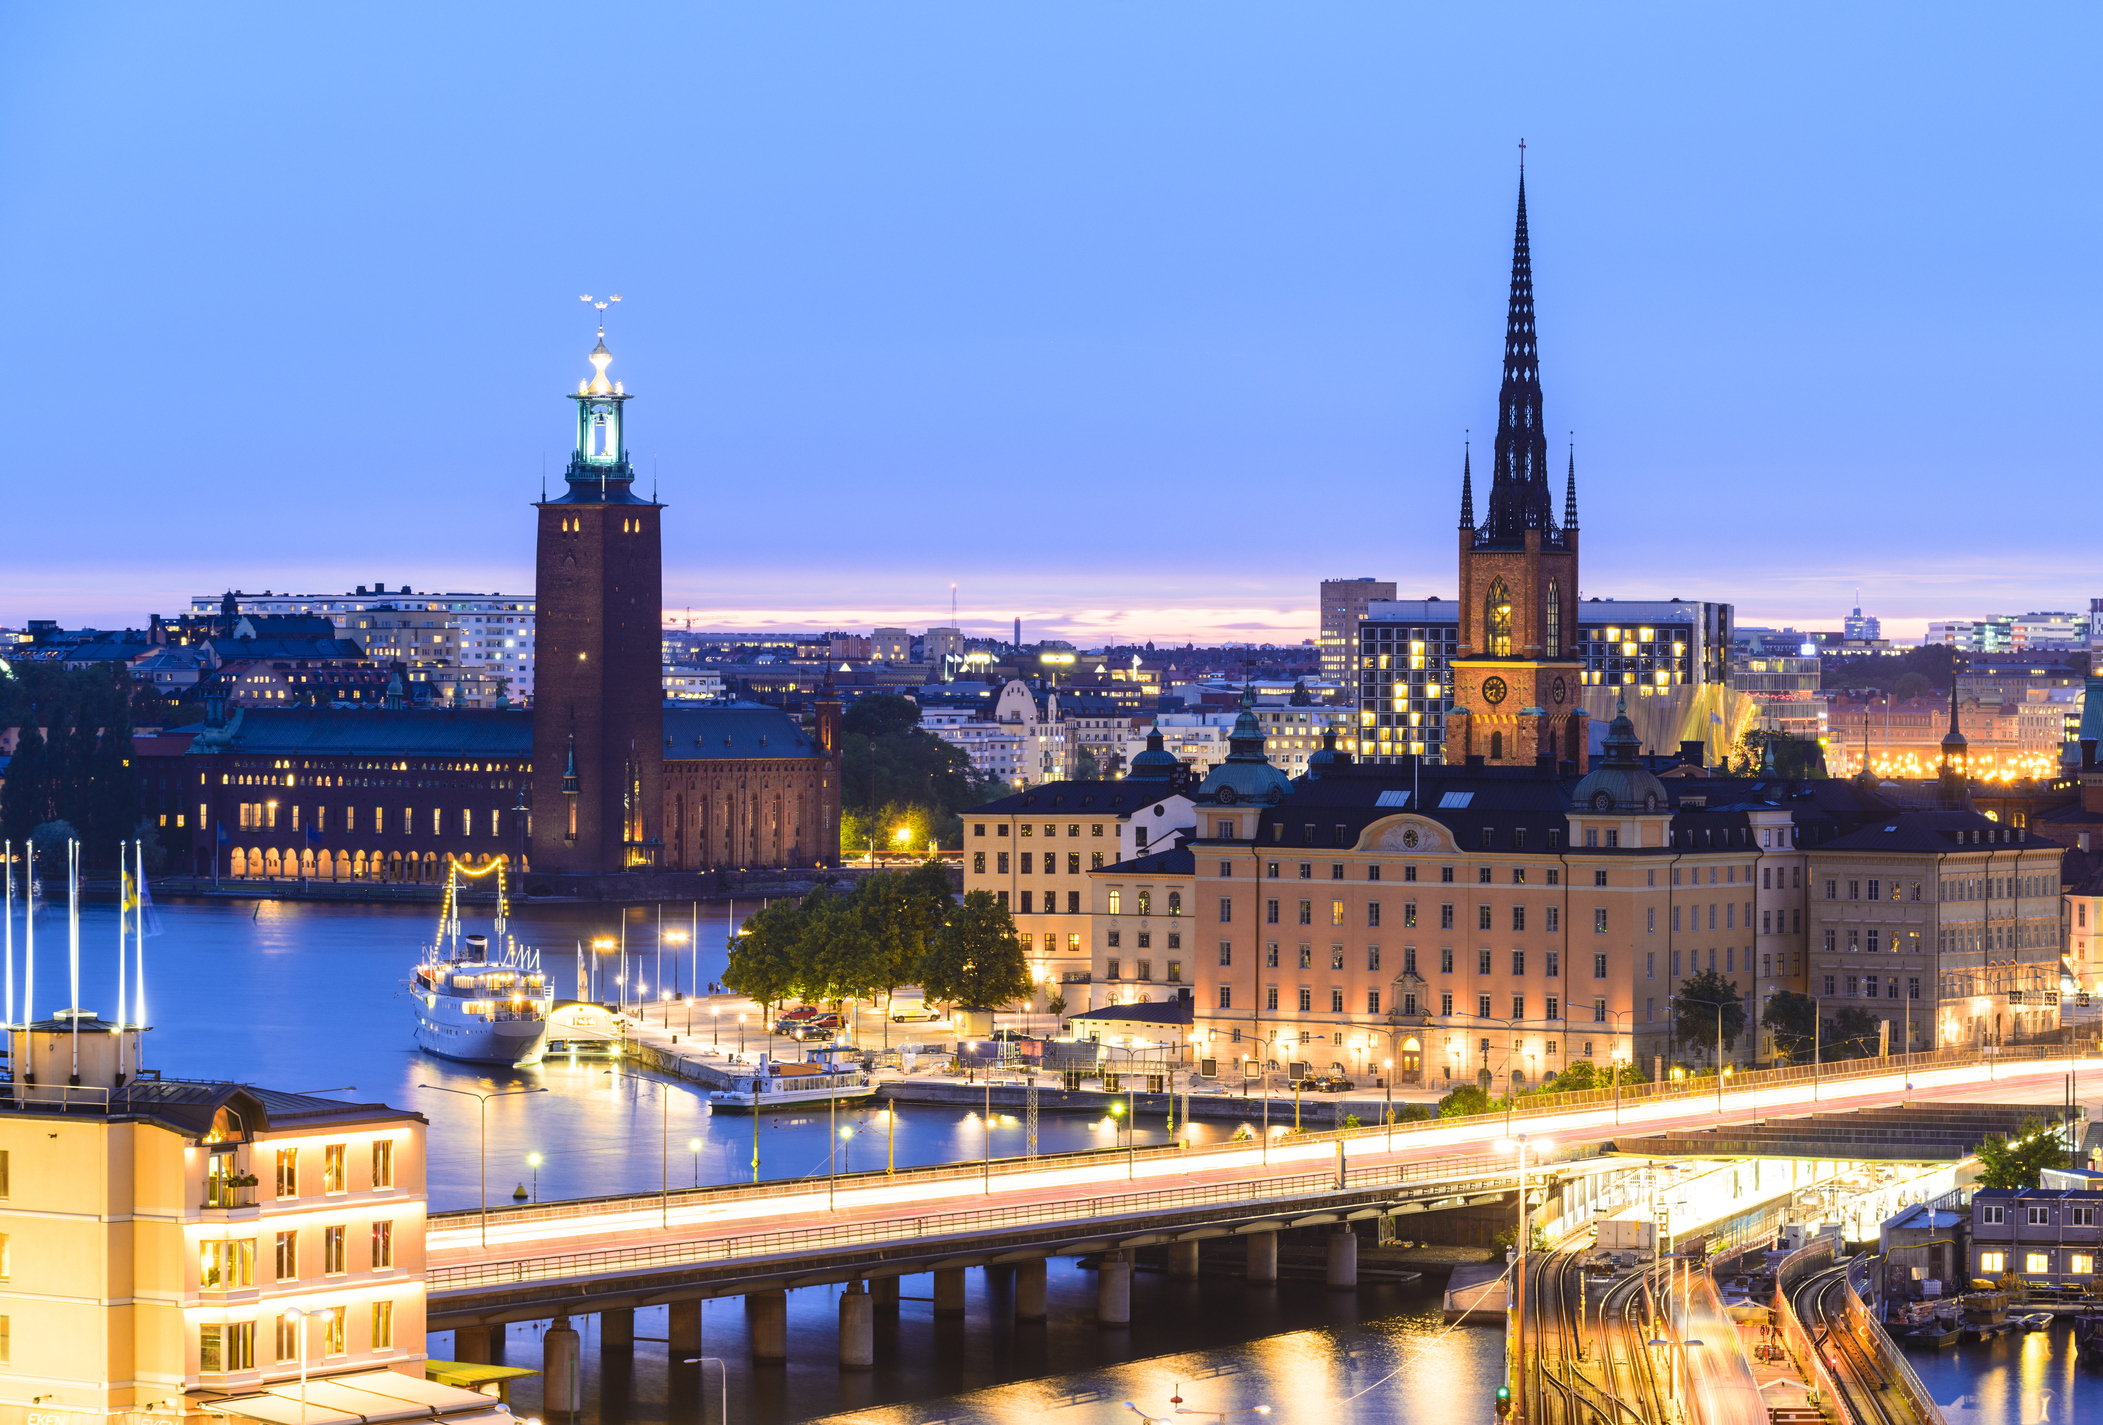 Riddarholmen and Gamla Stan Skyline in Stockholm at Twilight, Sweden